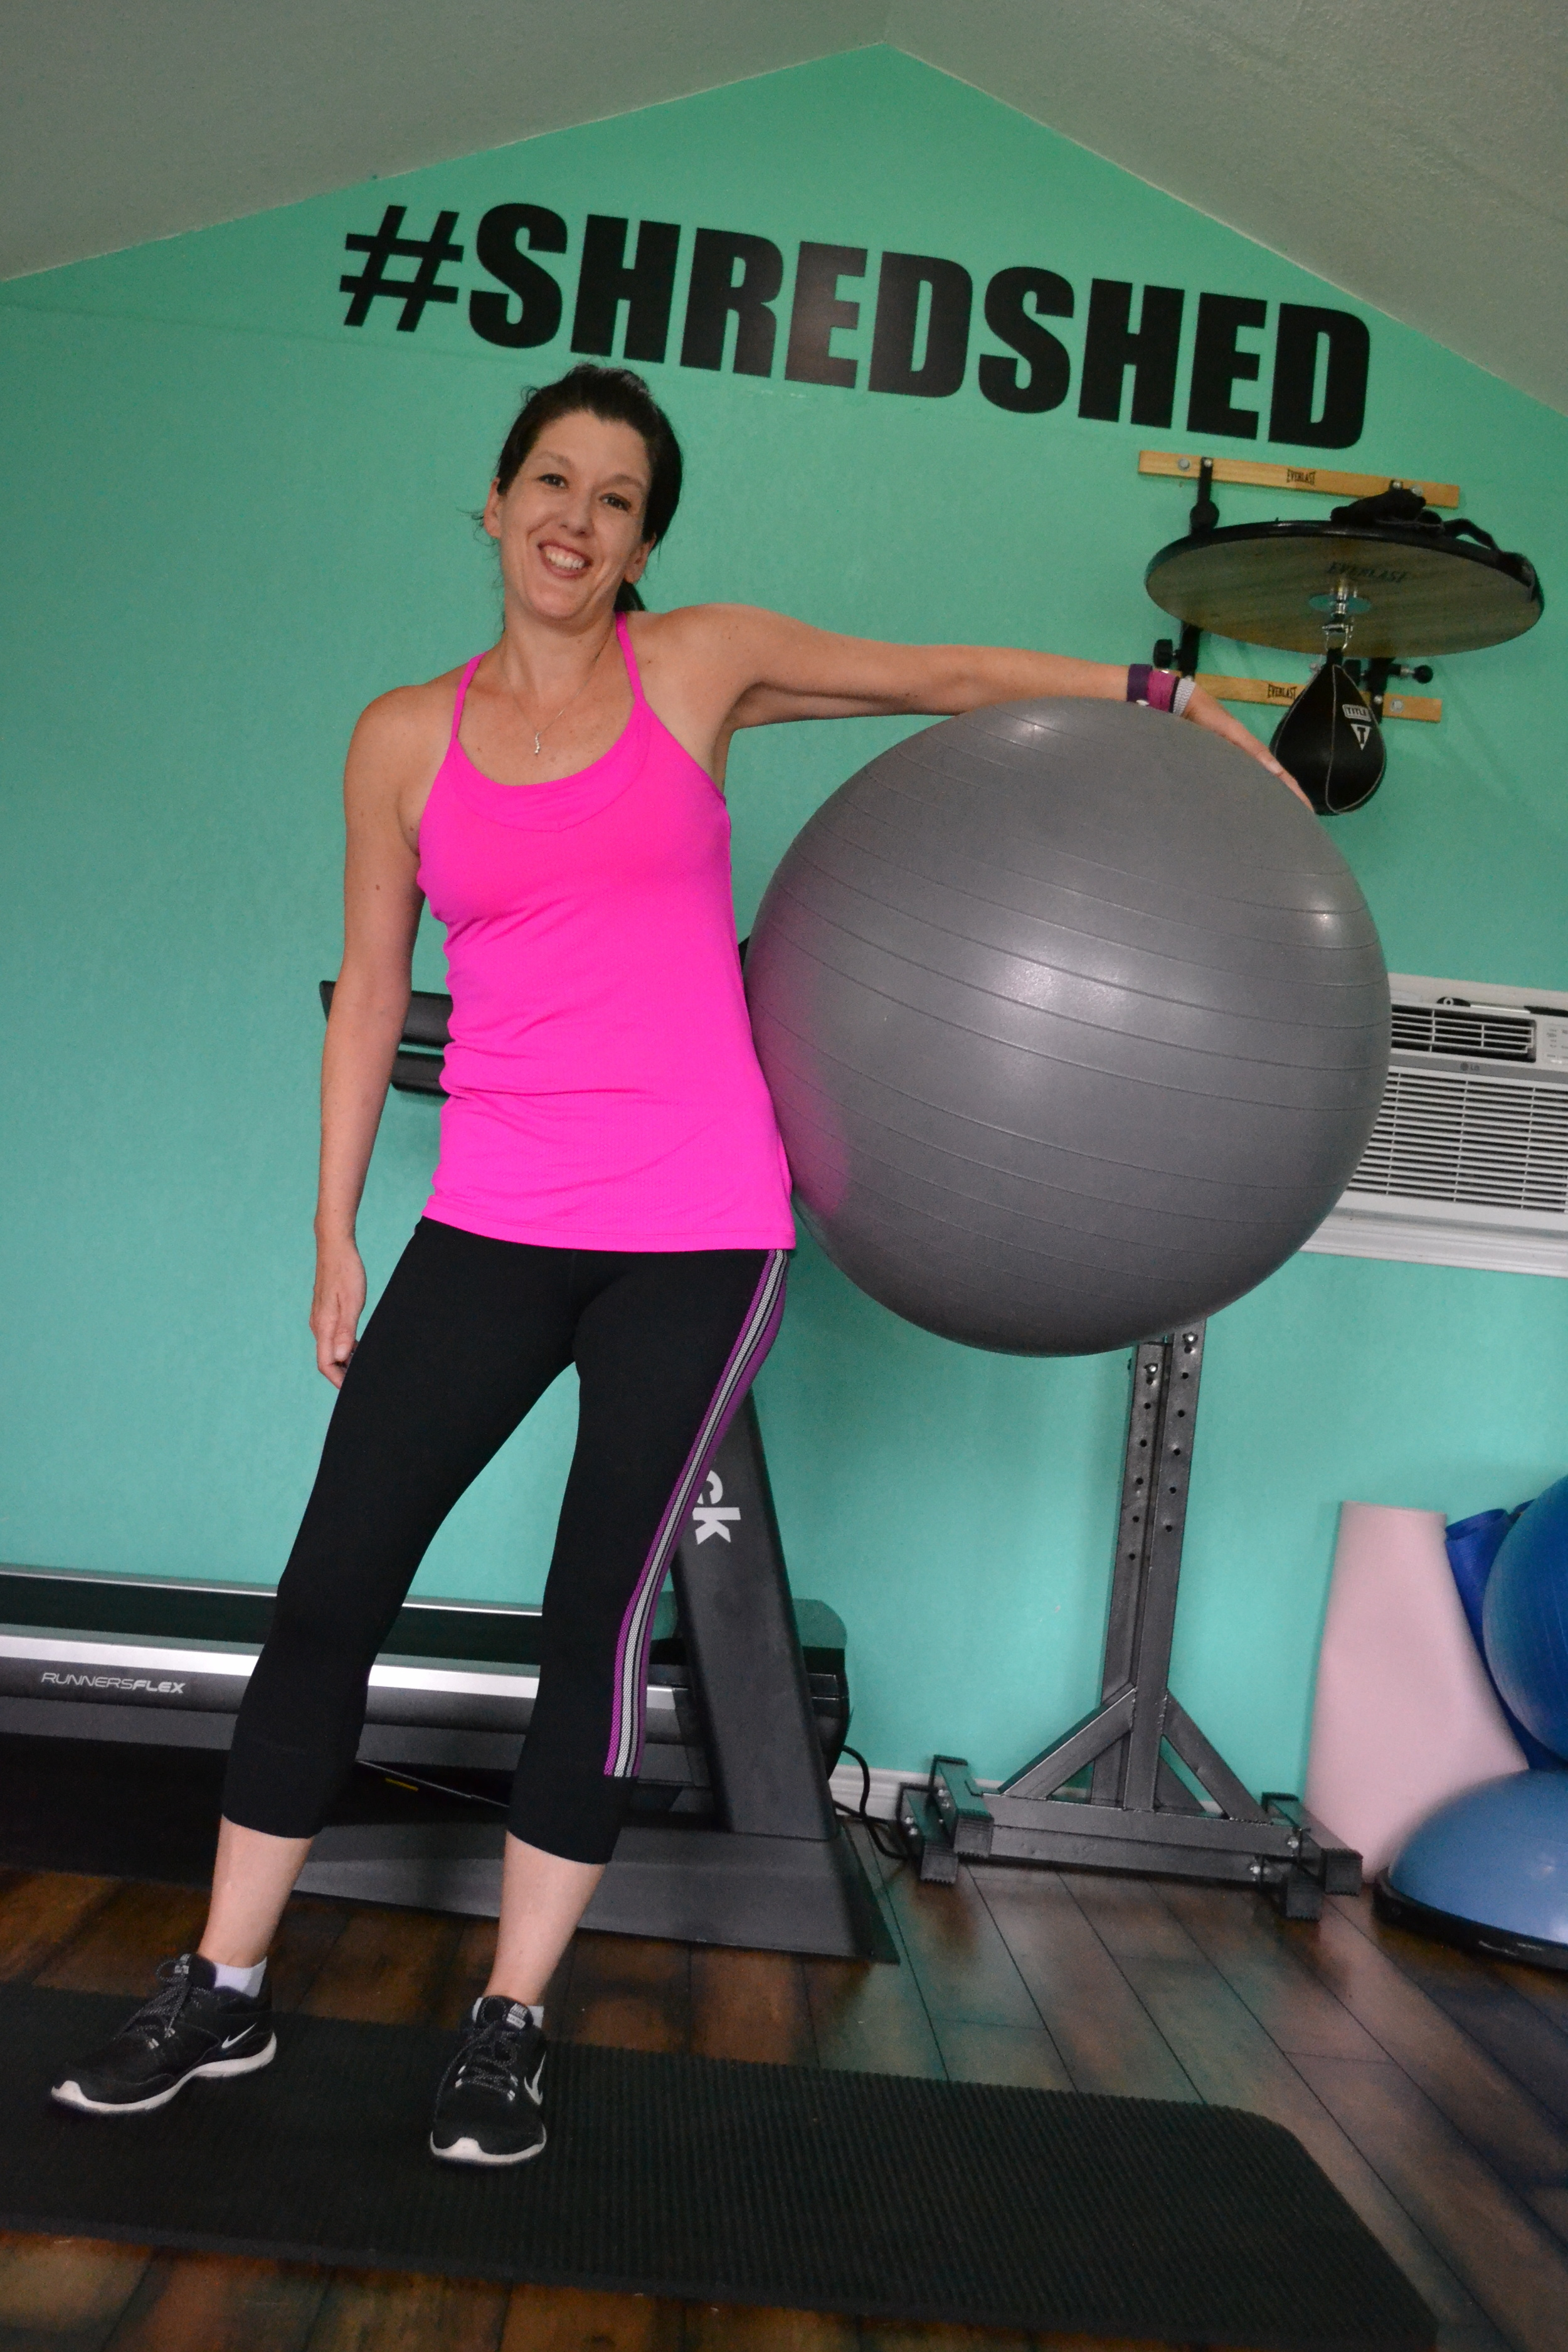 Stability ball training in the Shredshed